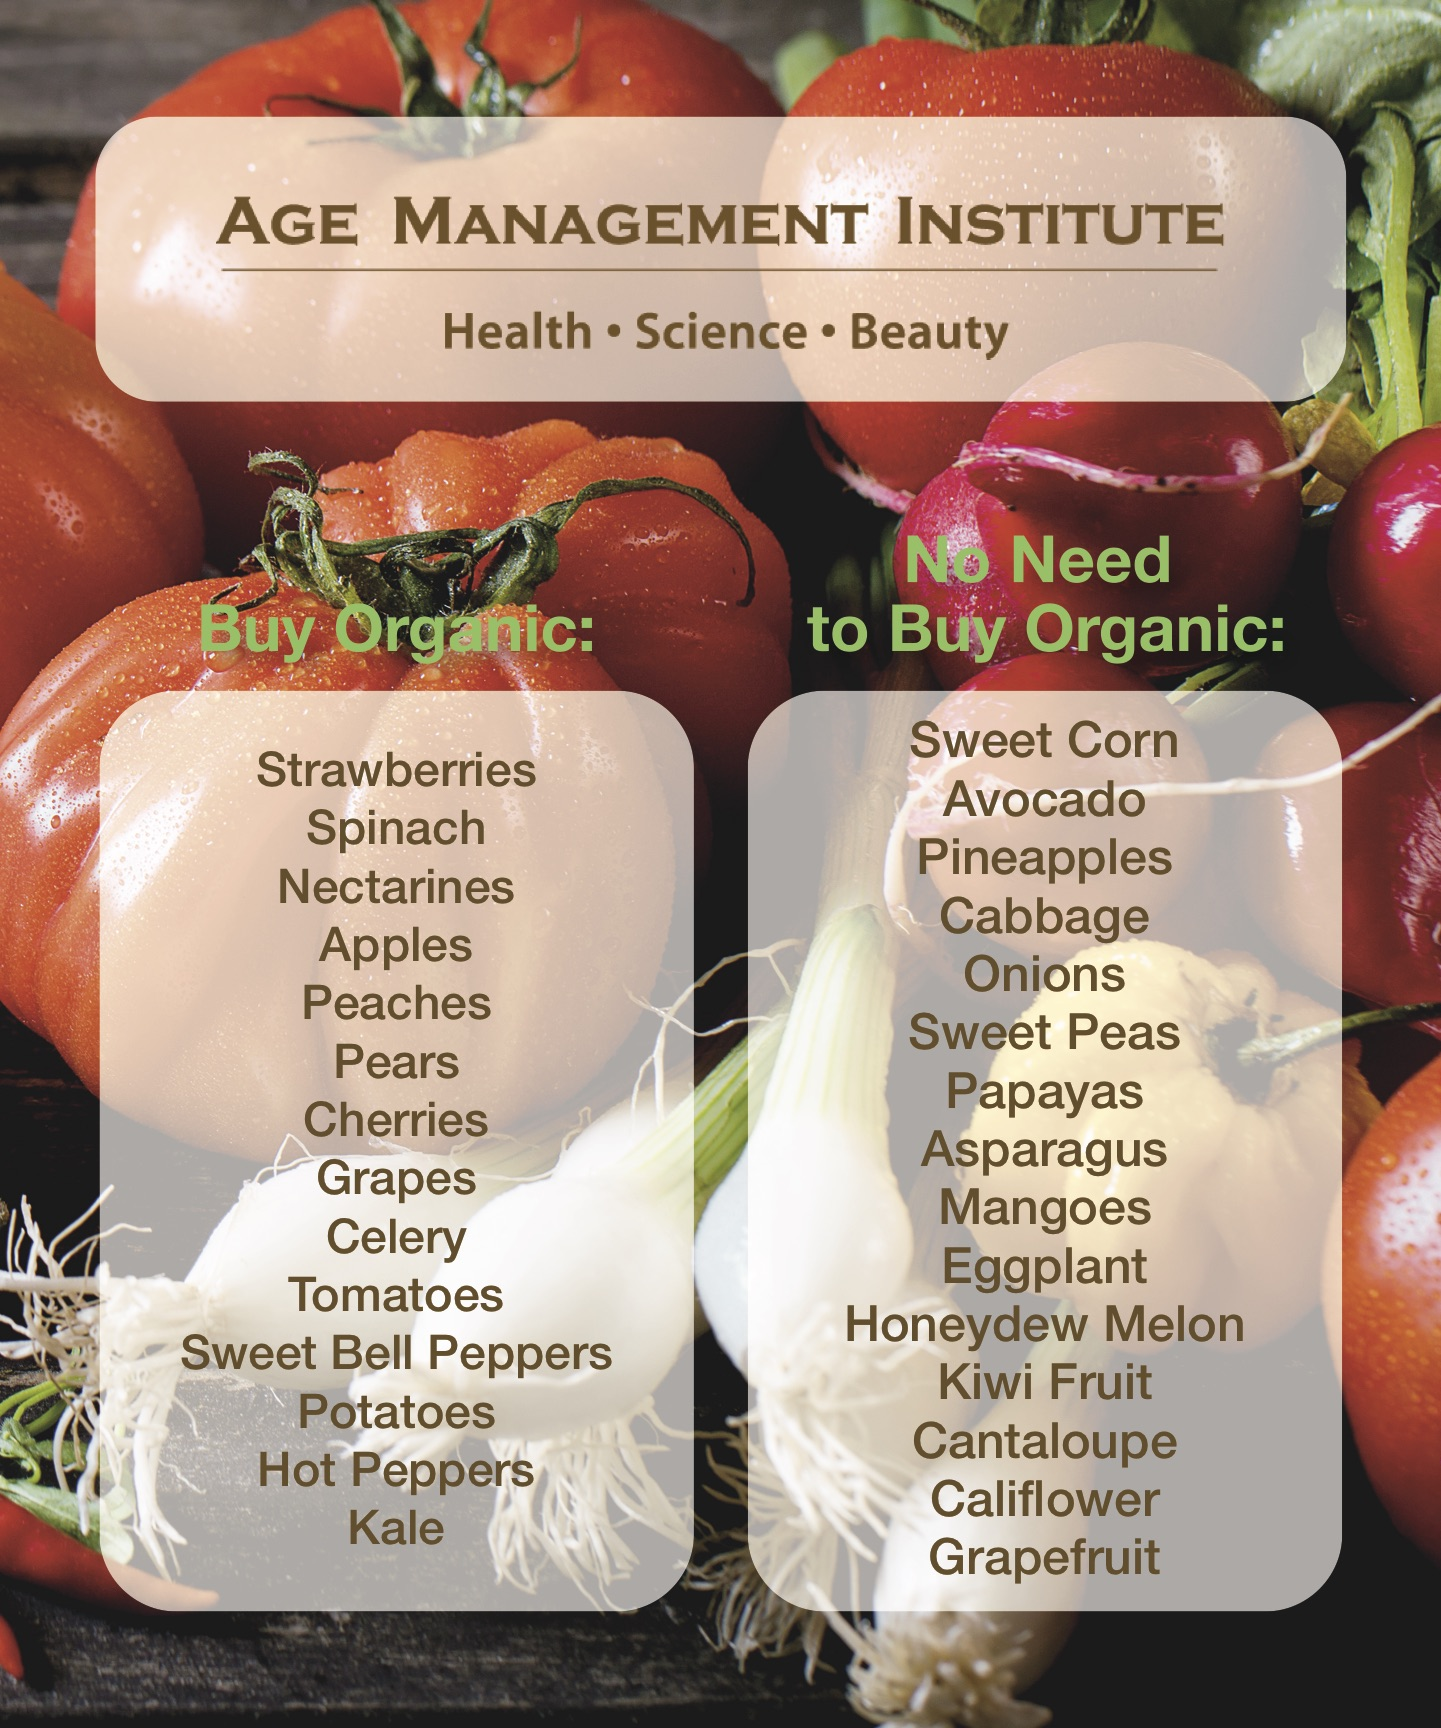 When to buy organic